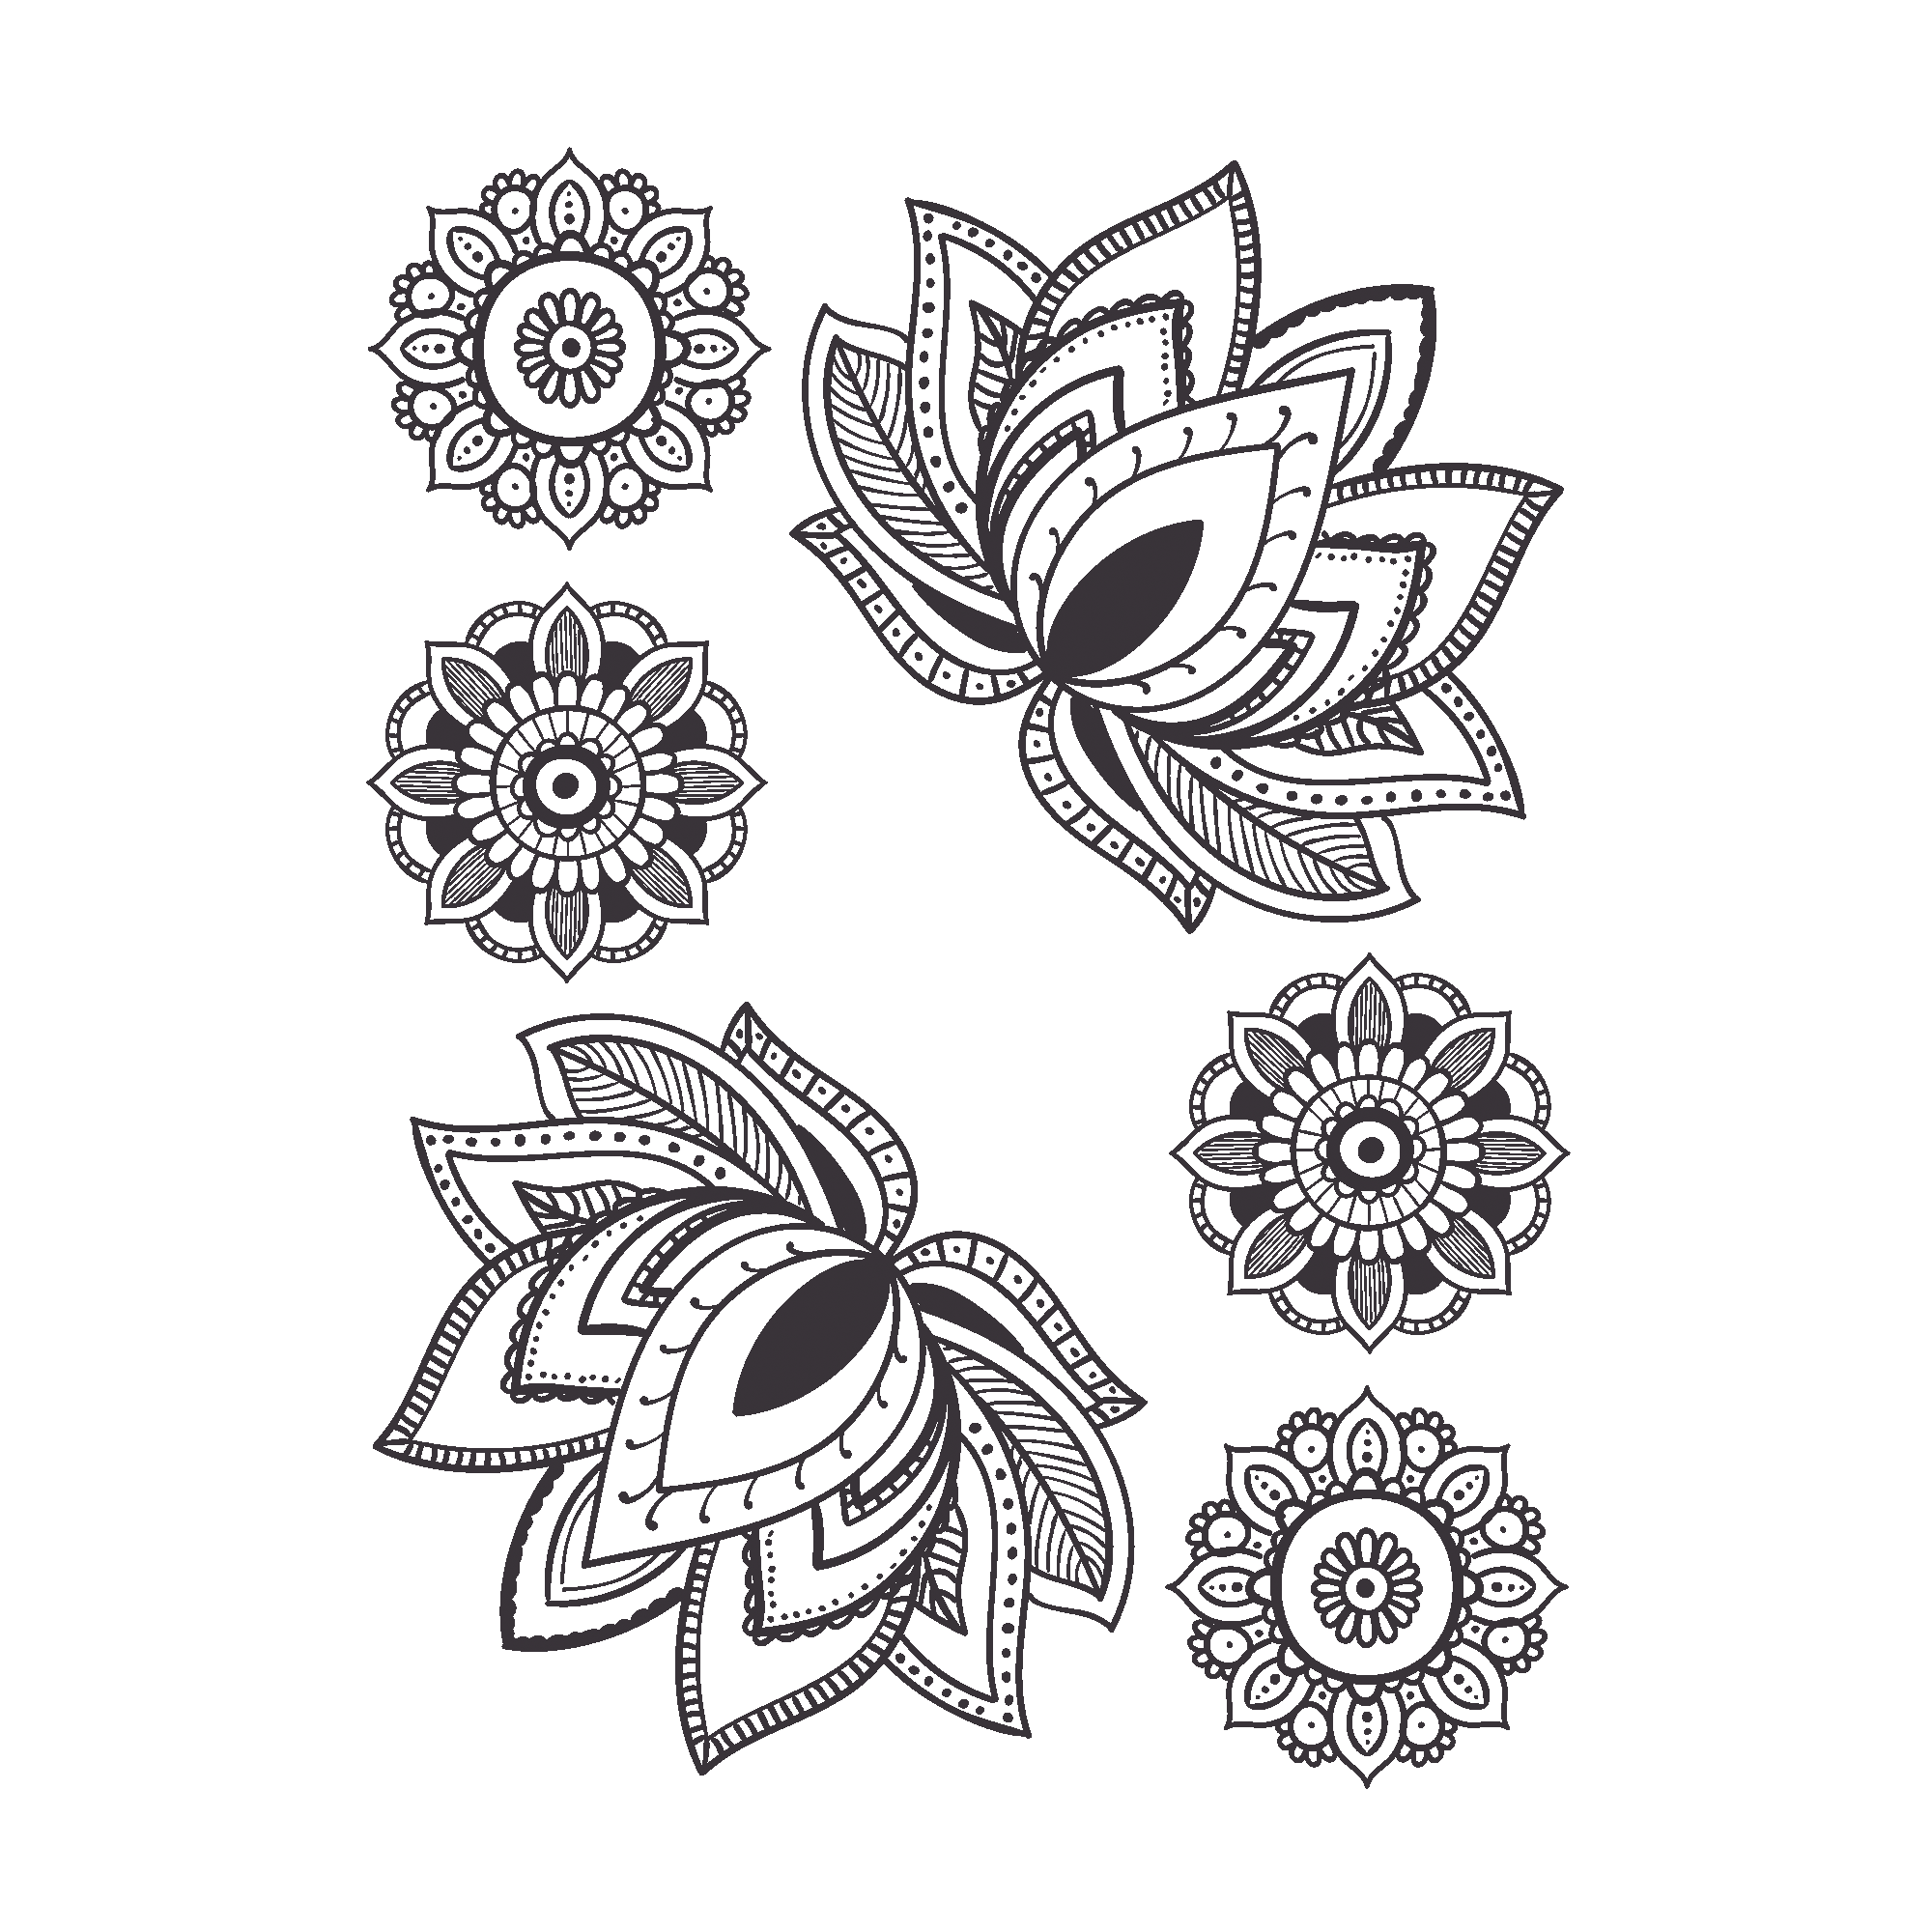 Temporary Tattoo Water Lilies And Mandalas Black And White